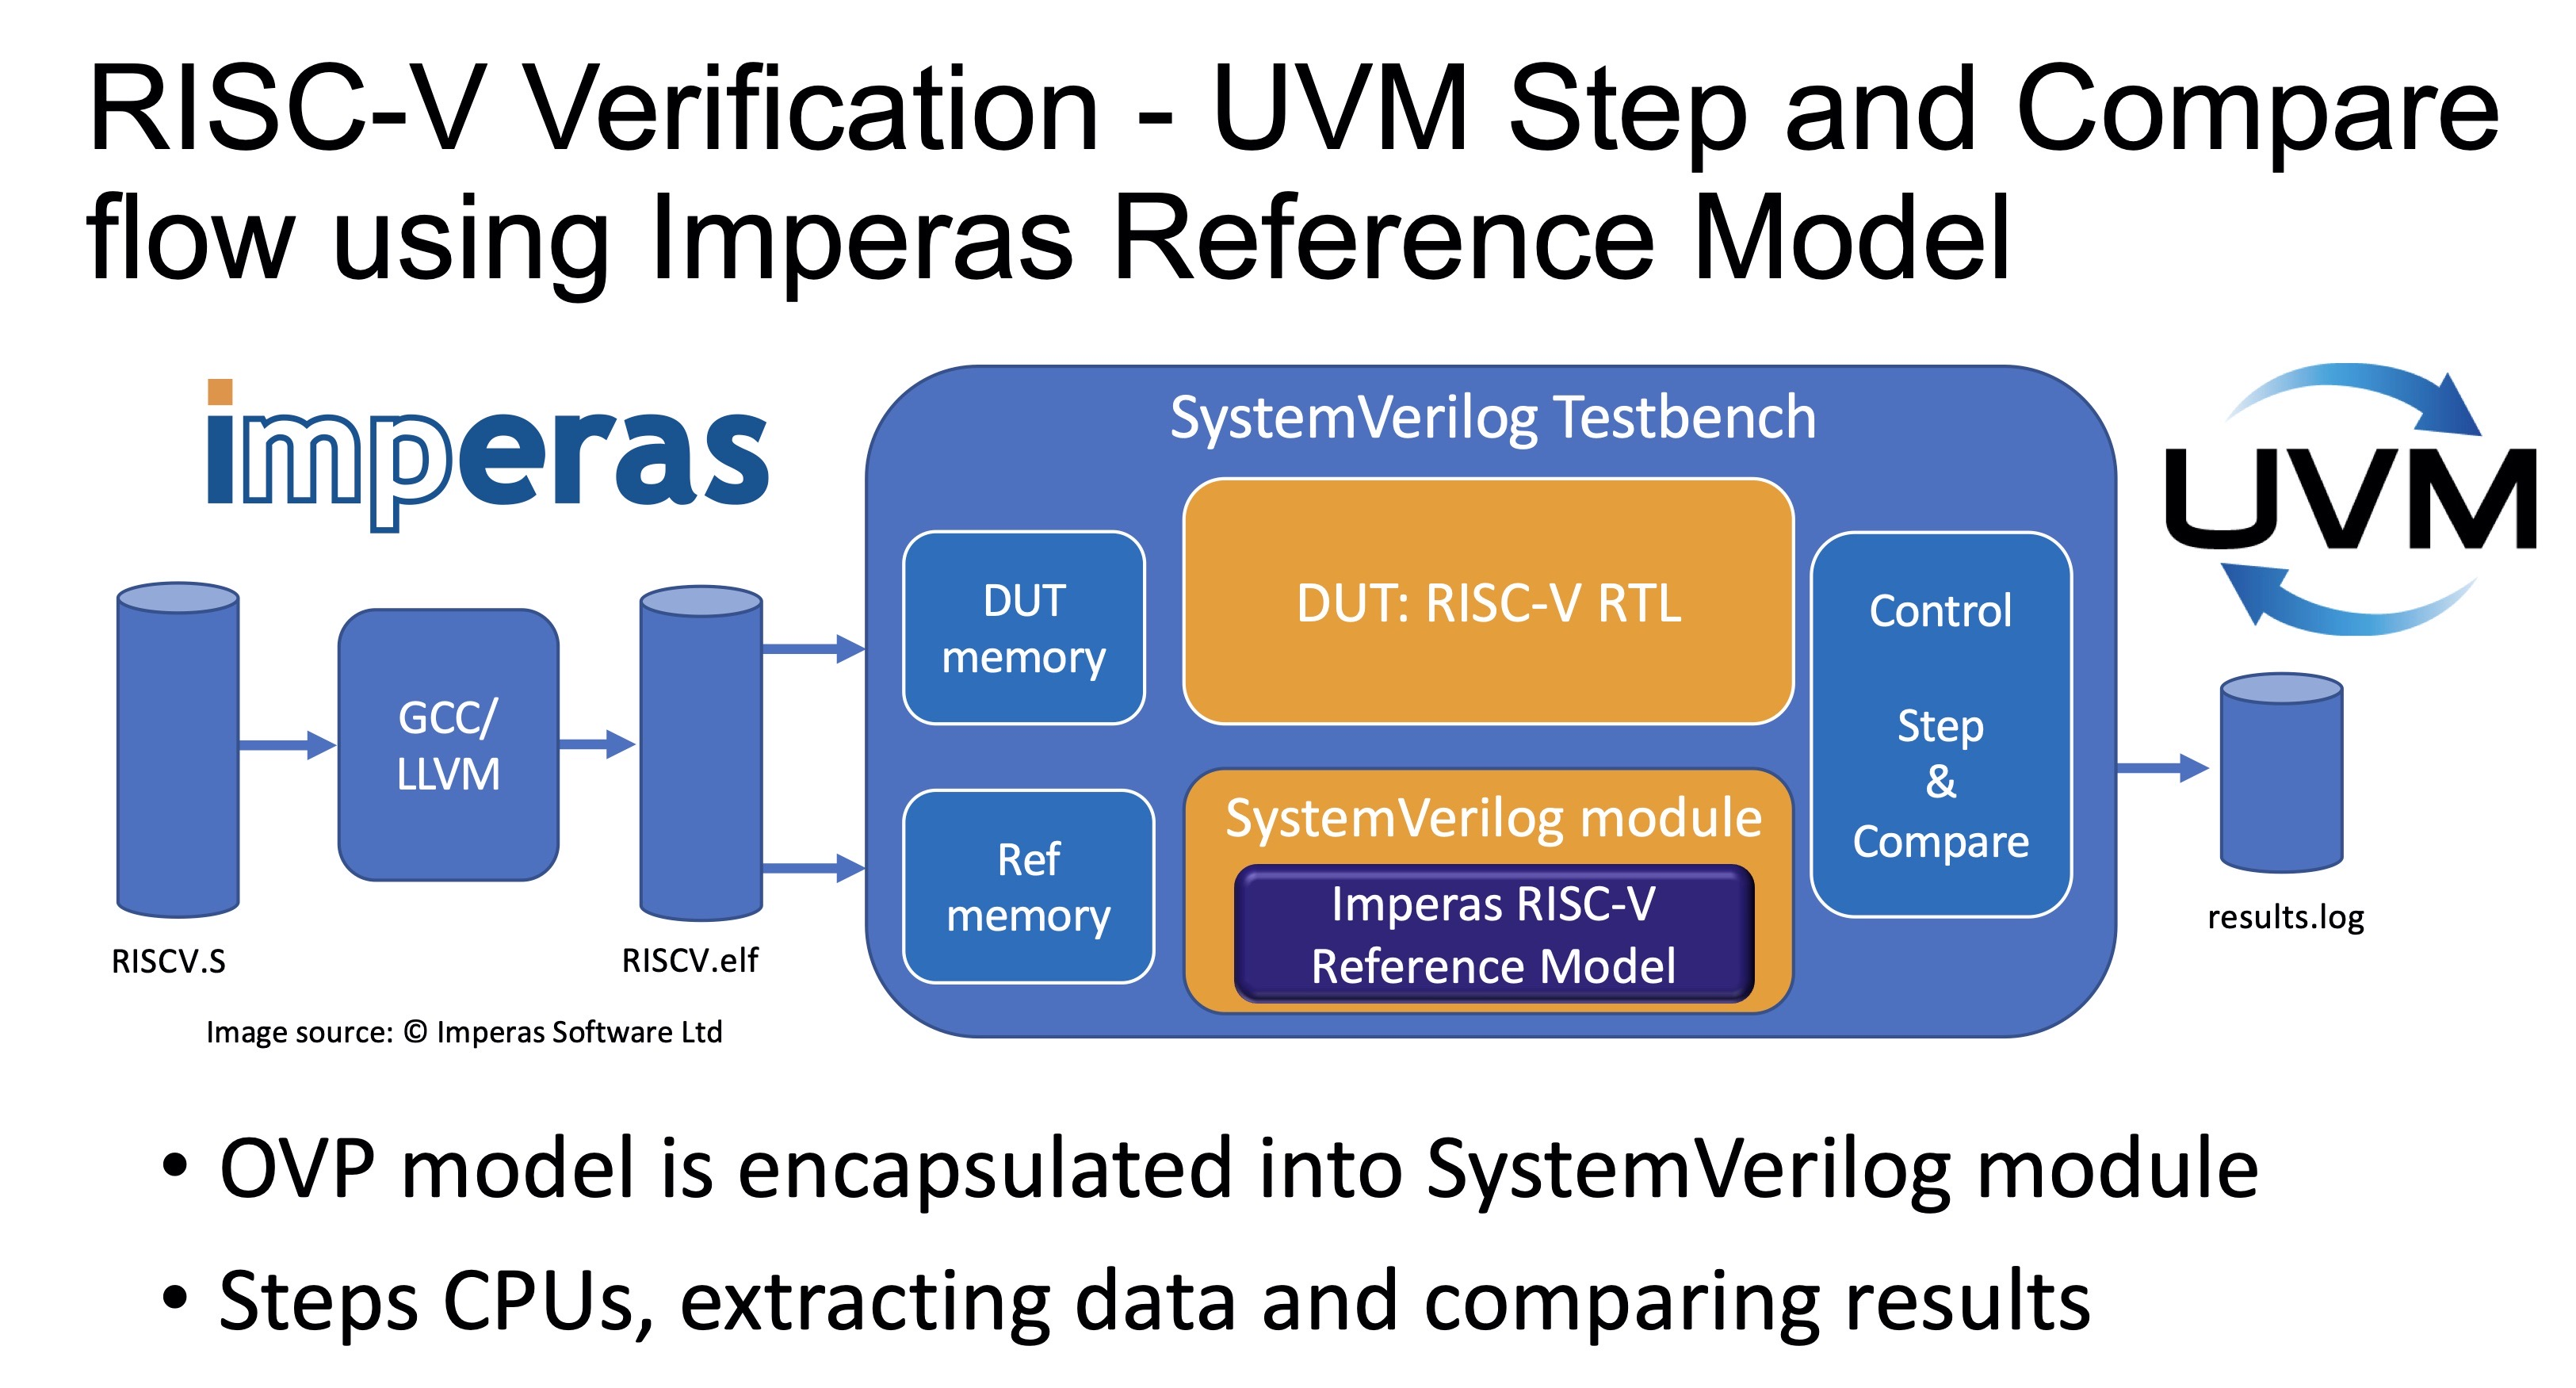 RISC-V Verification - UVM Step and Compare flow using Imperas Reference Model